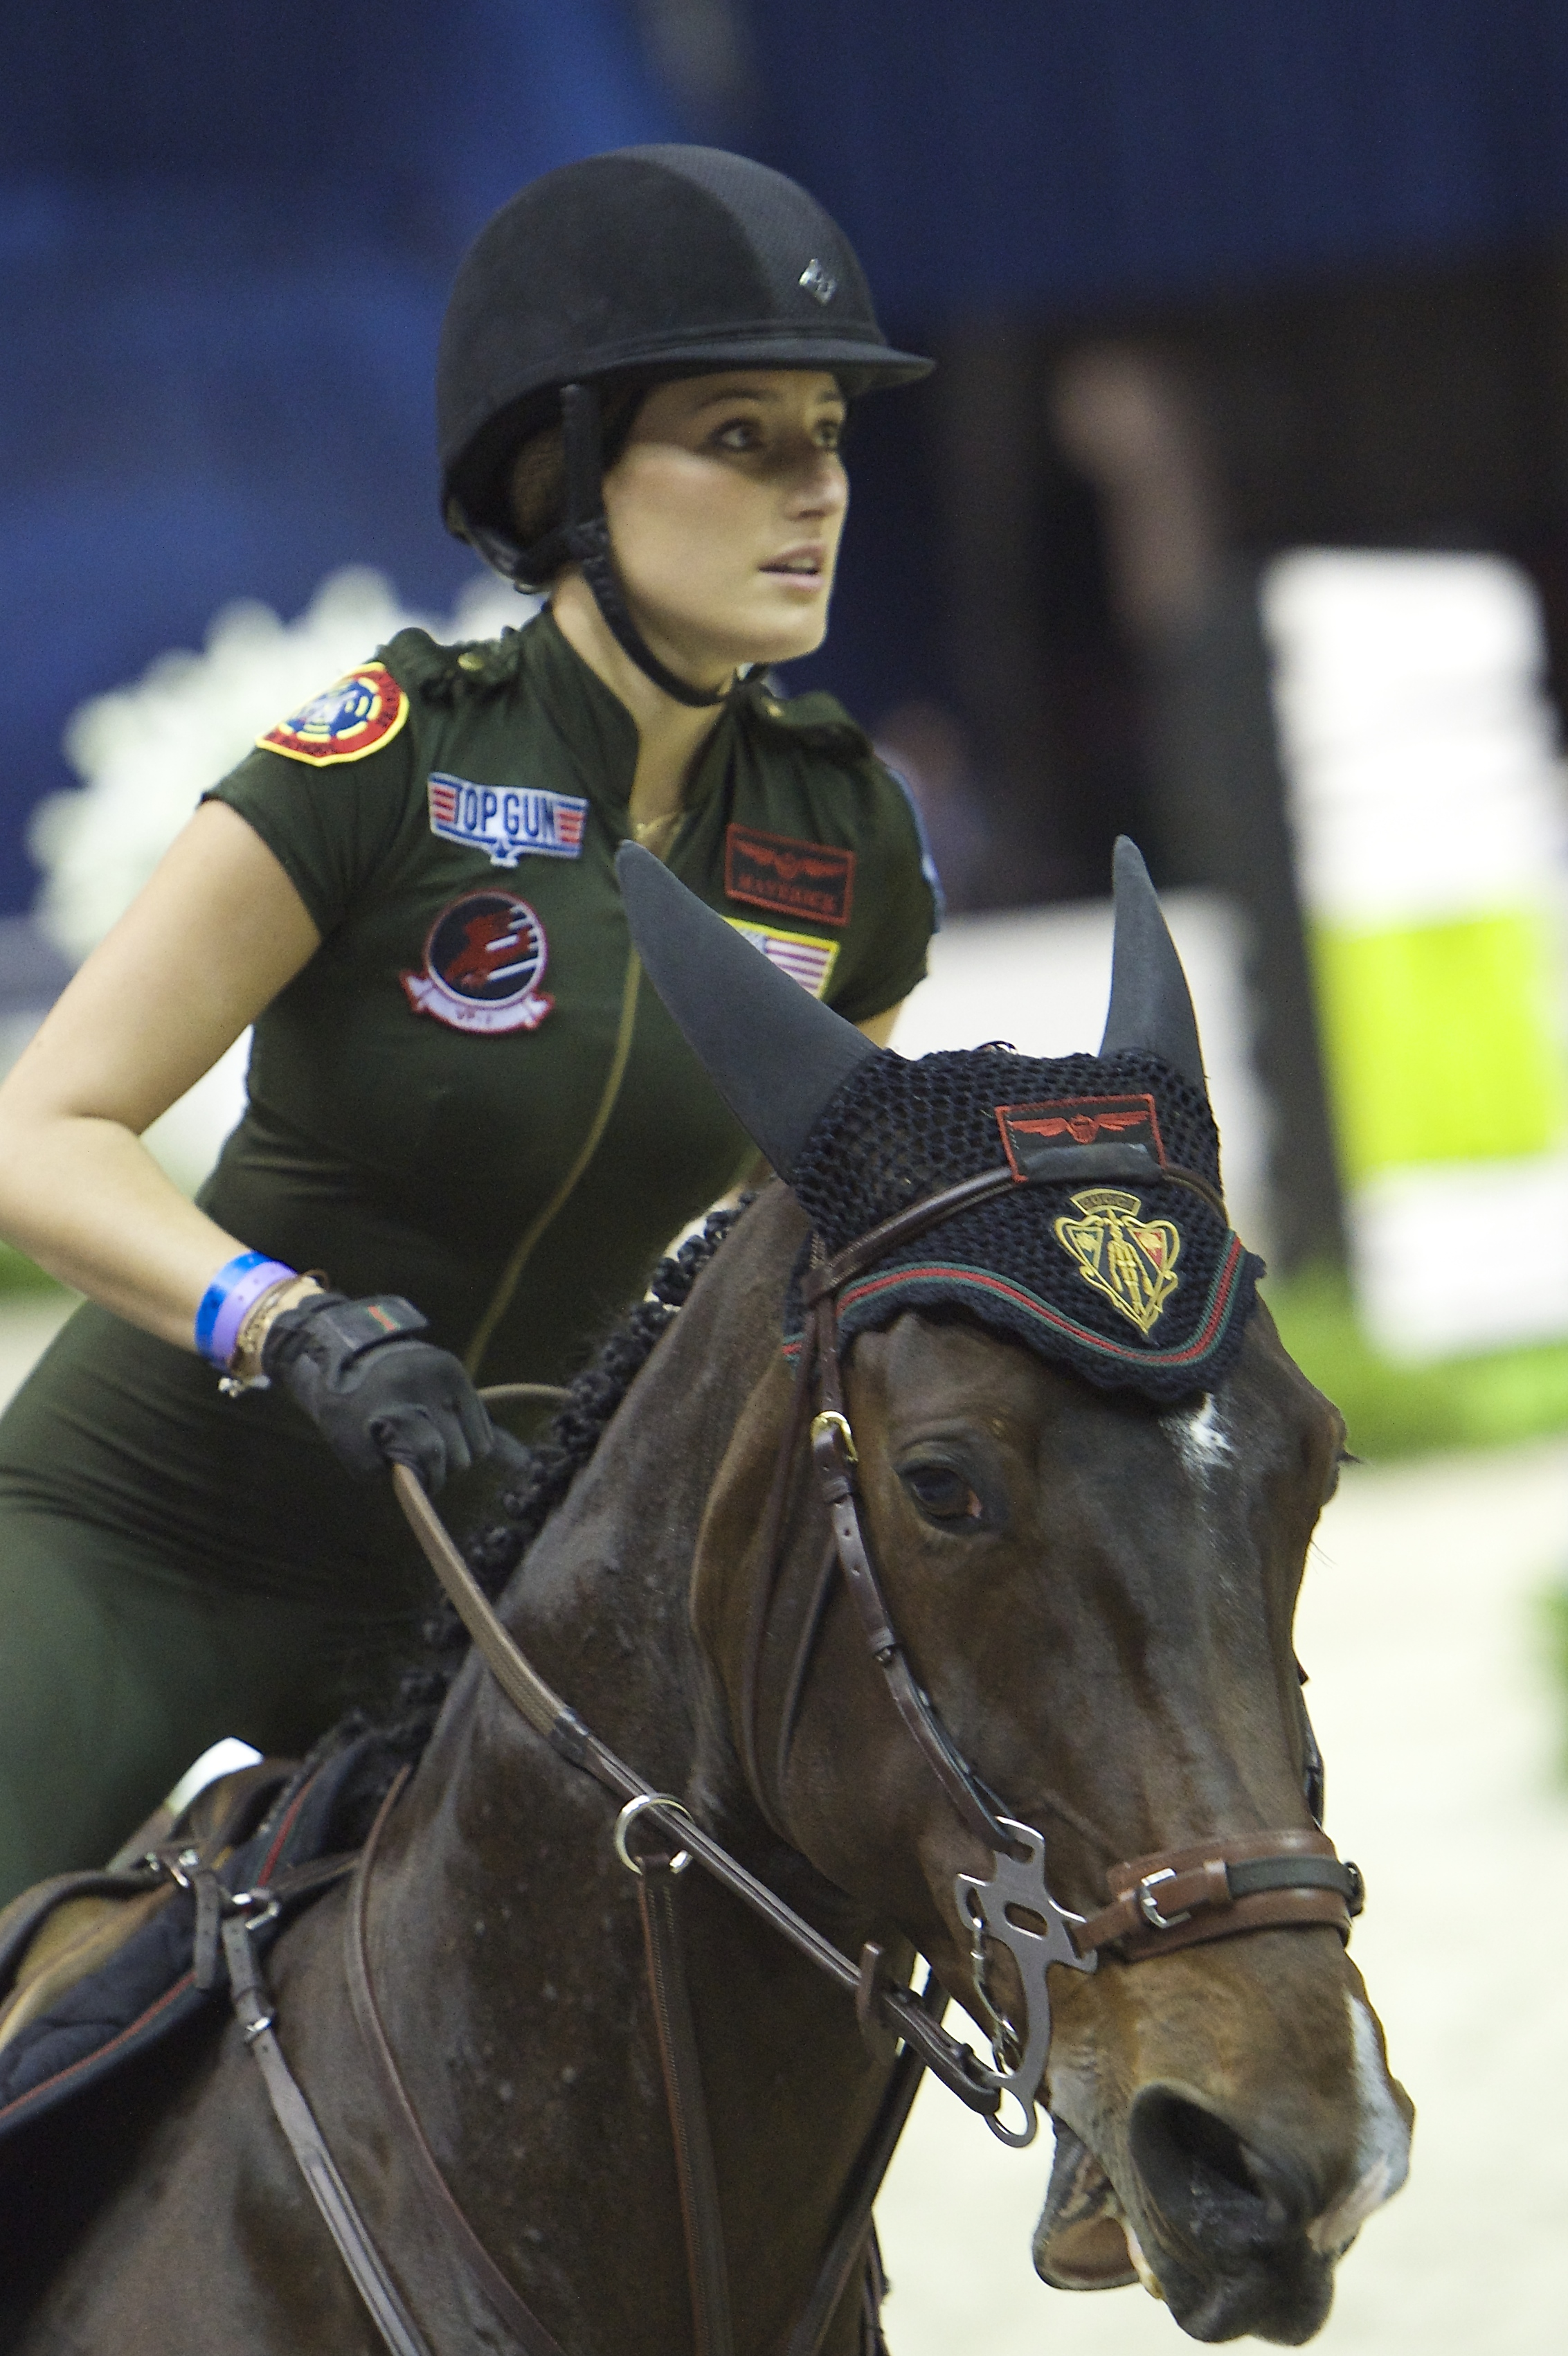 2014 Wihs Jumps To New Heights